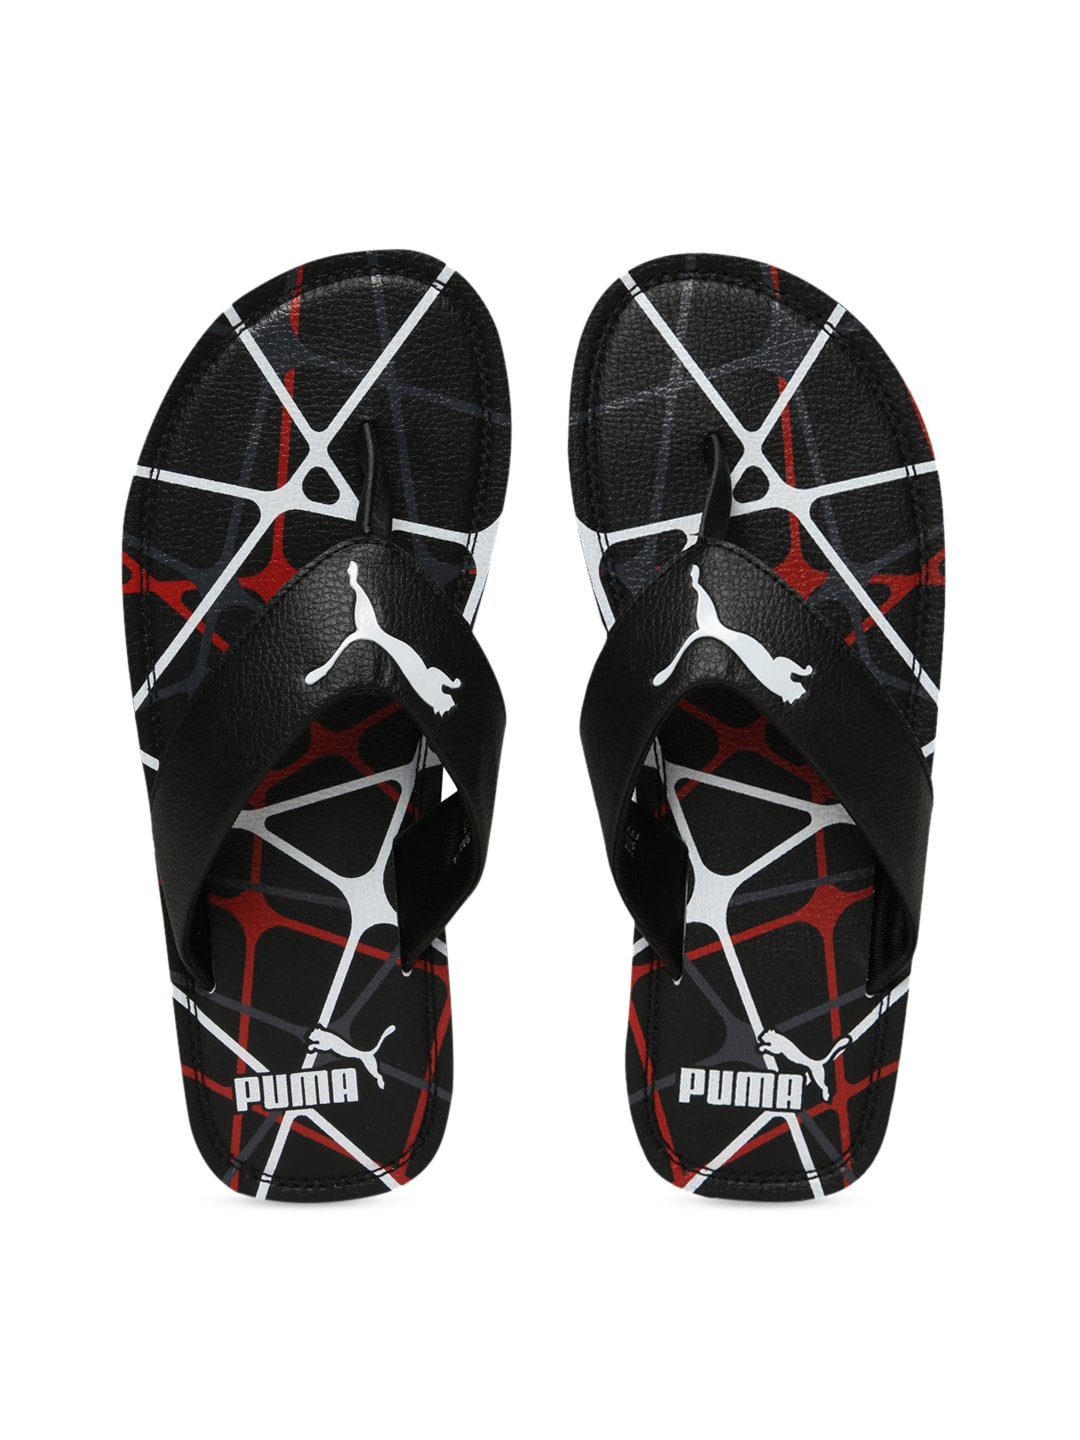 095478ee7e6a Flip Flops for Men - Buy Slippers   Flip Flops for Men Online